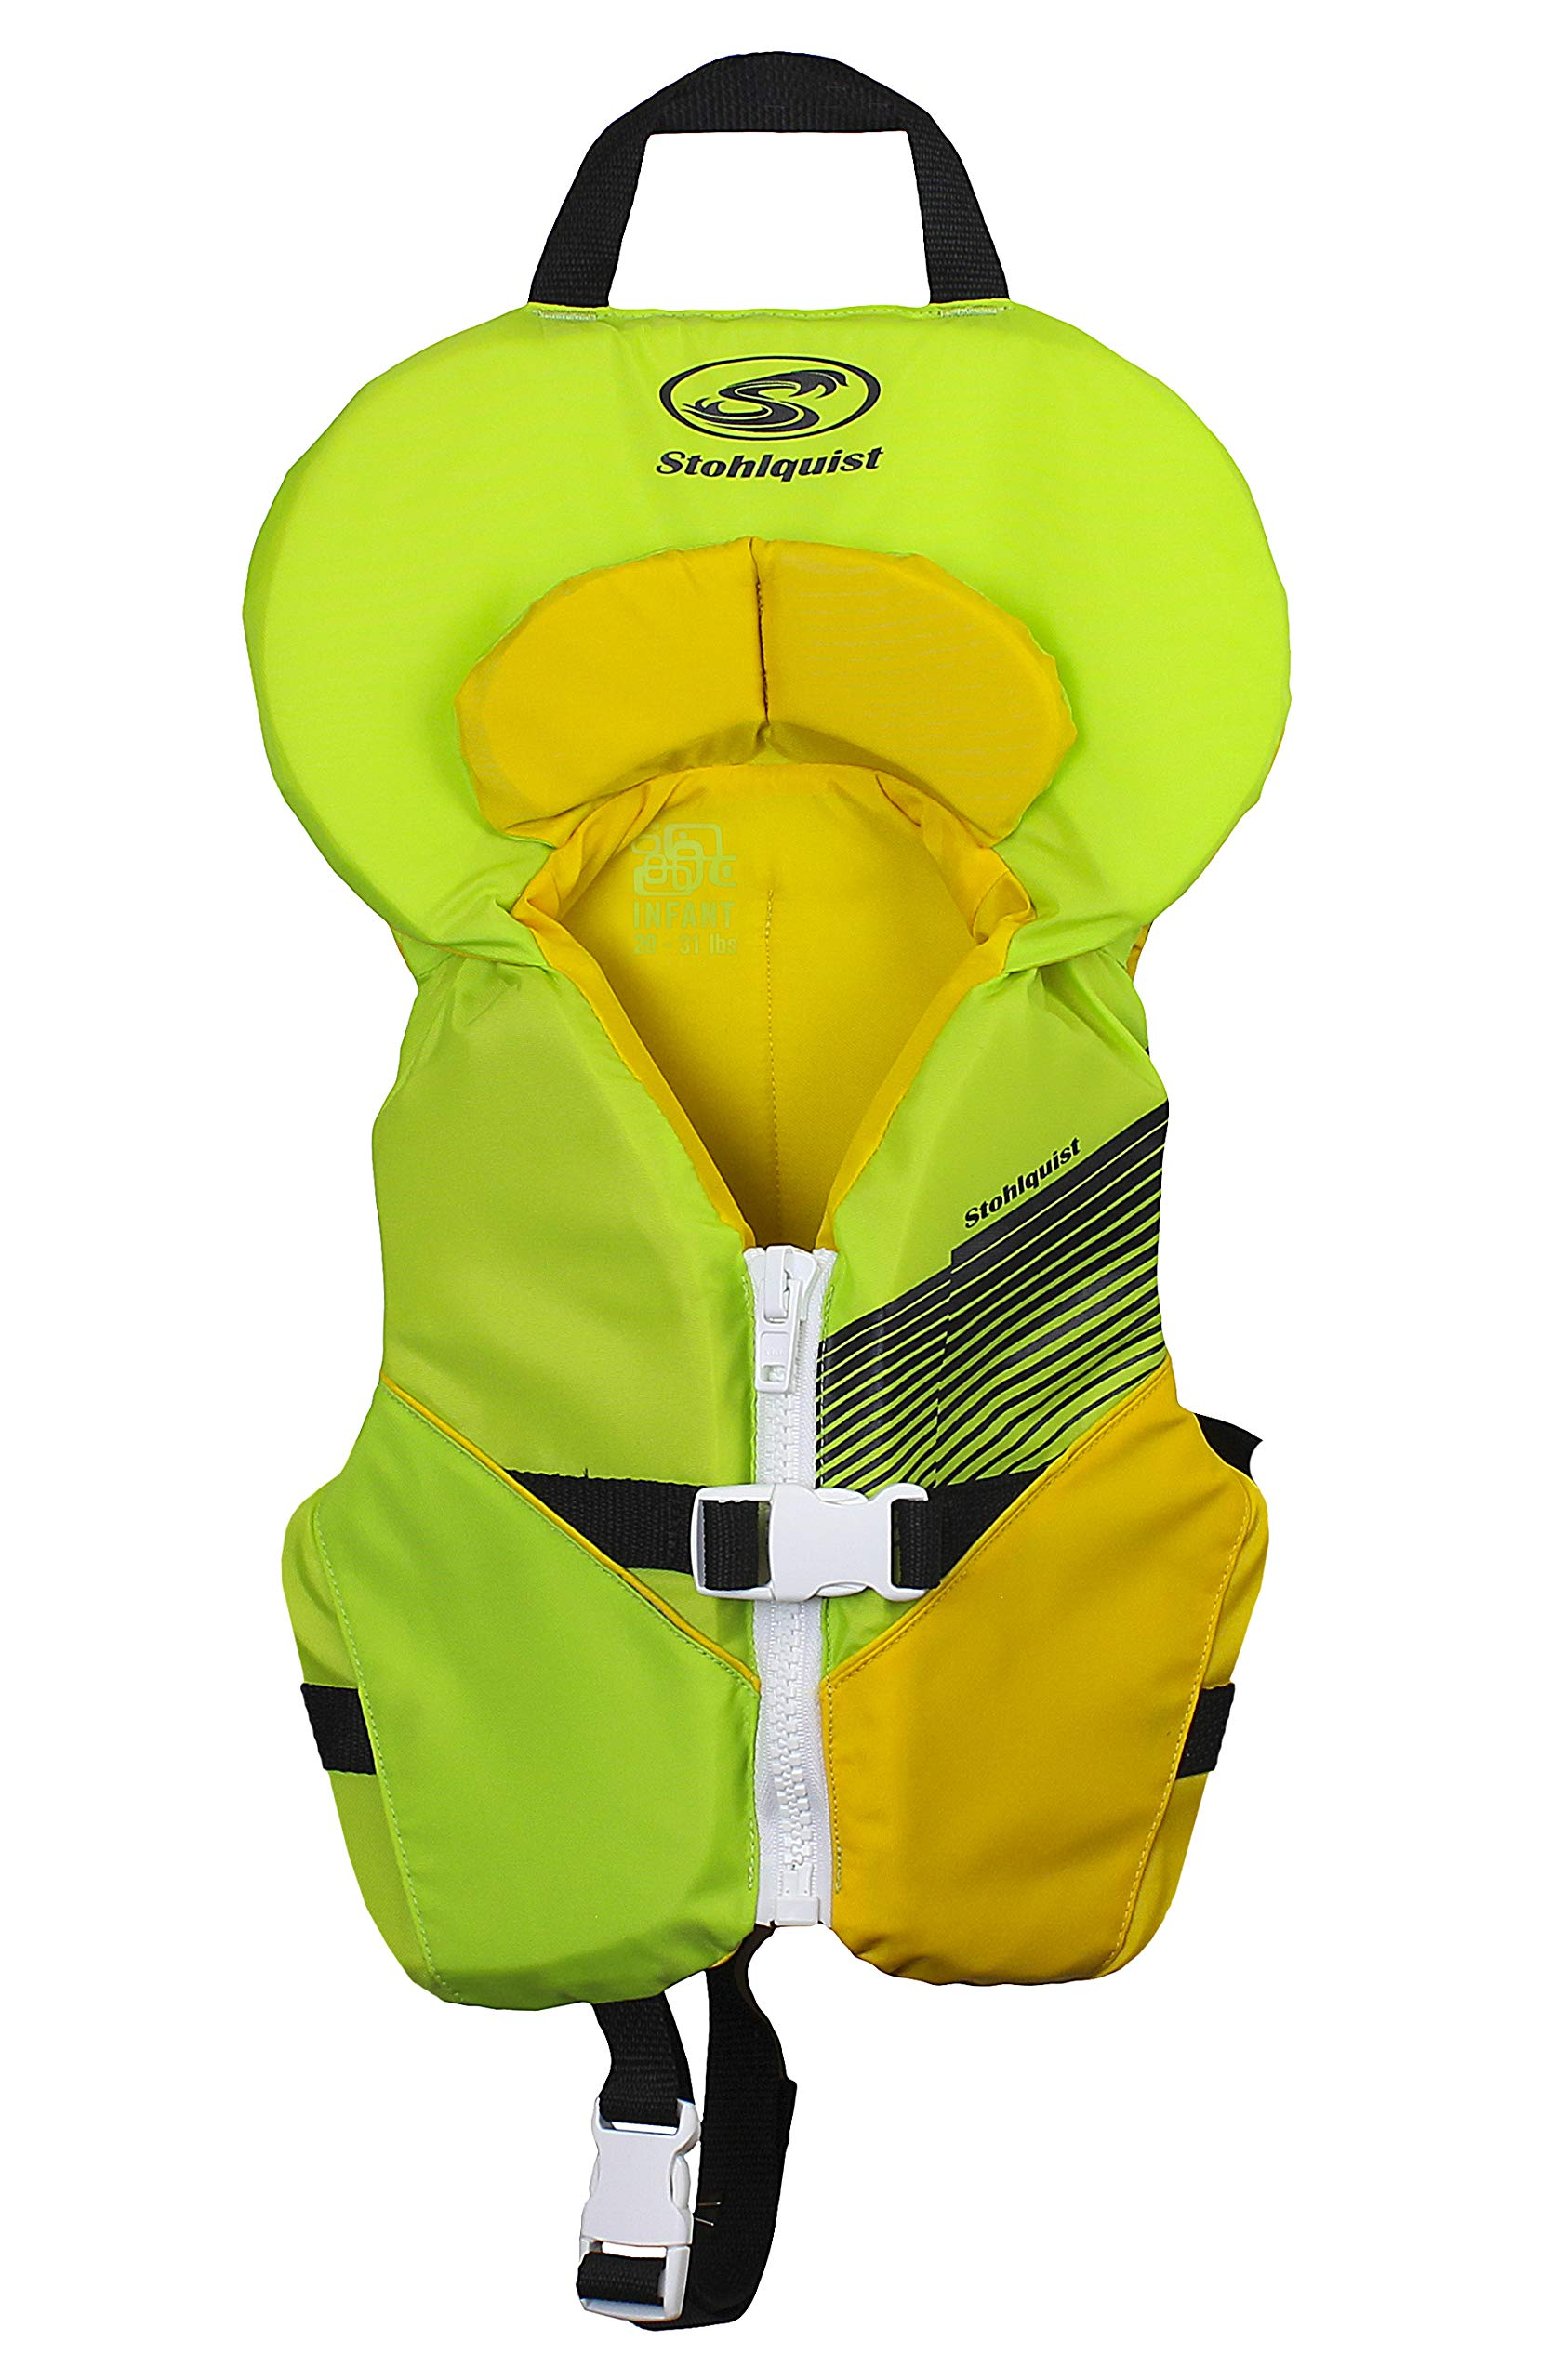 Stohlquist Waterware Toddler Life Jacket Coast Guard Approved Life Vest for Infants, Lime/Yellow, 8-30 Pounds